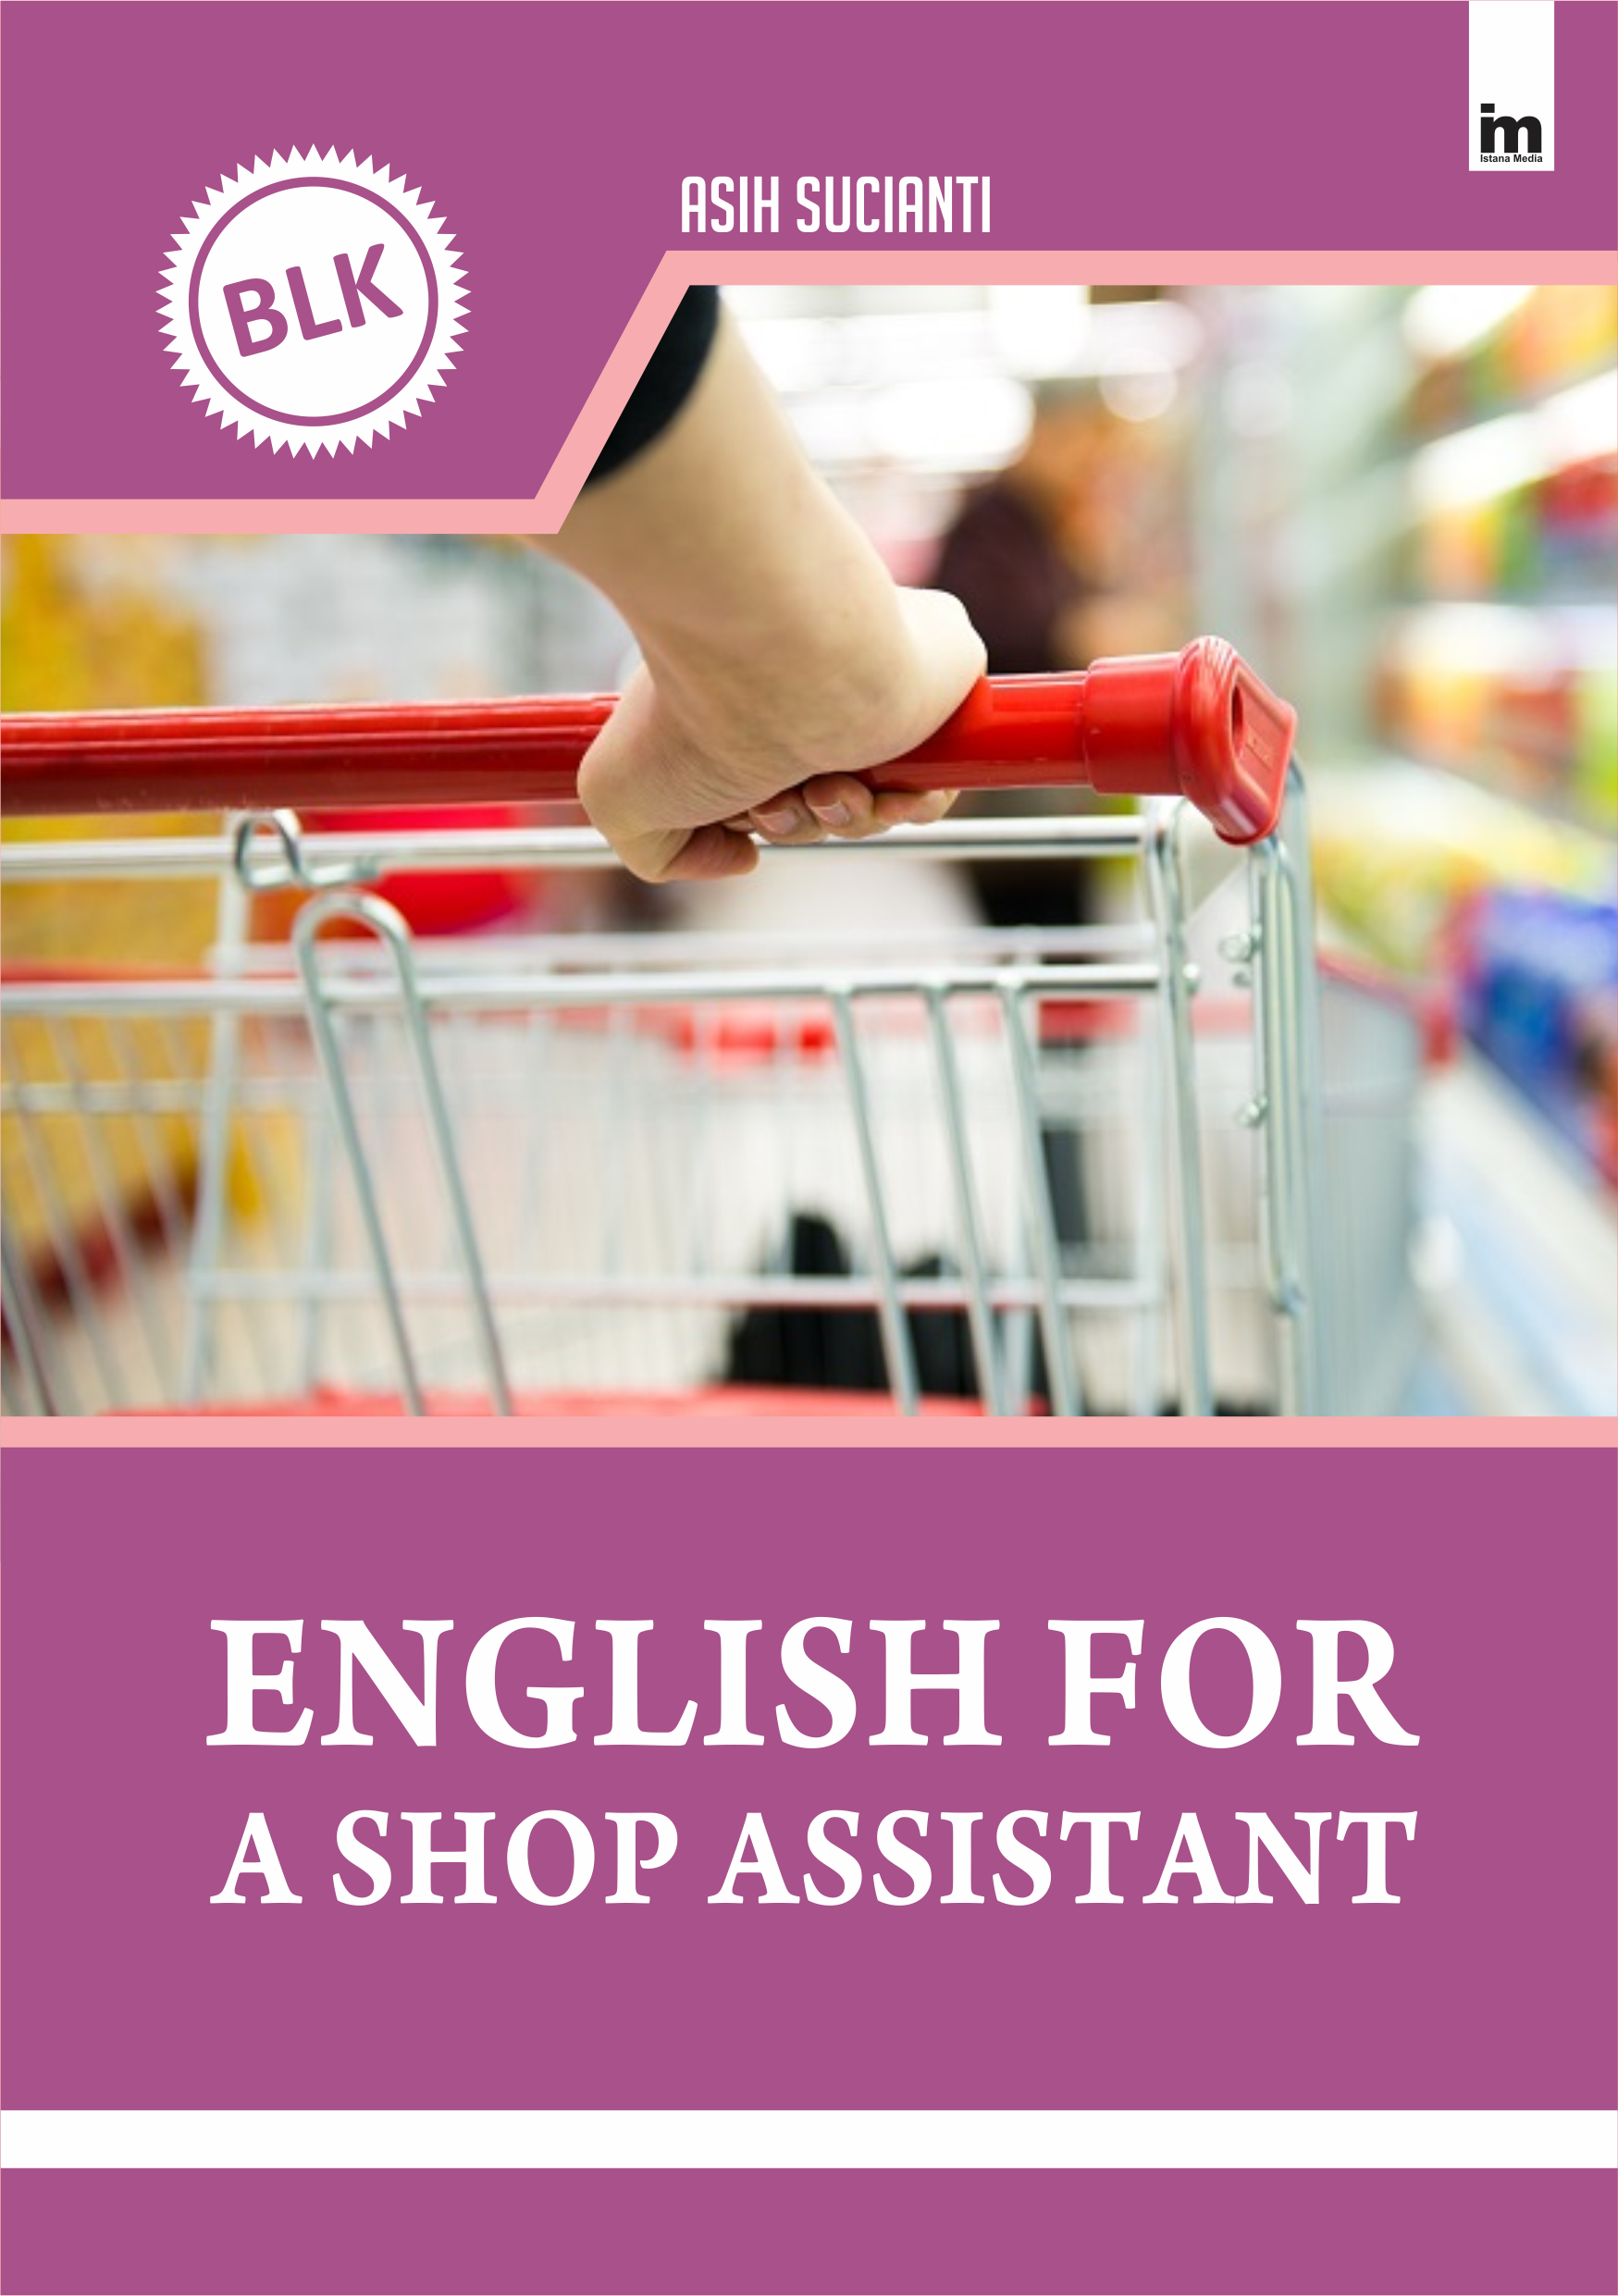 cover/(04-12-2020)english-for-a-shop-assistant.png